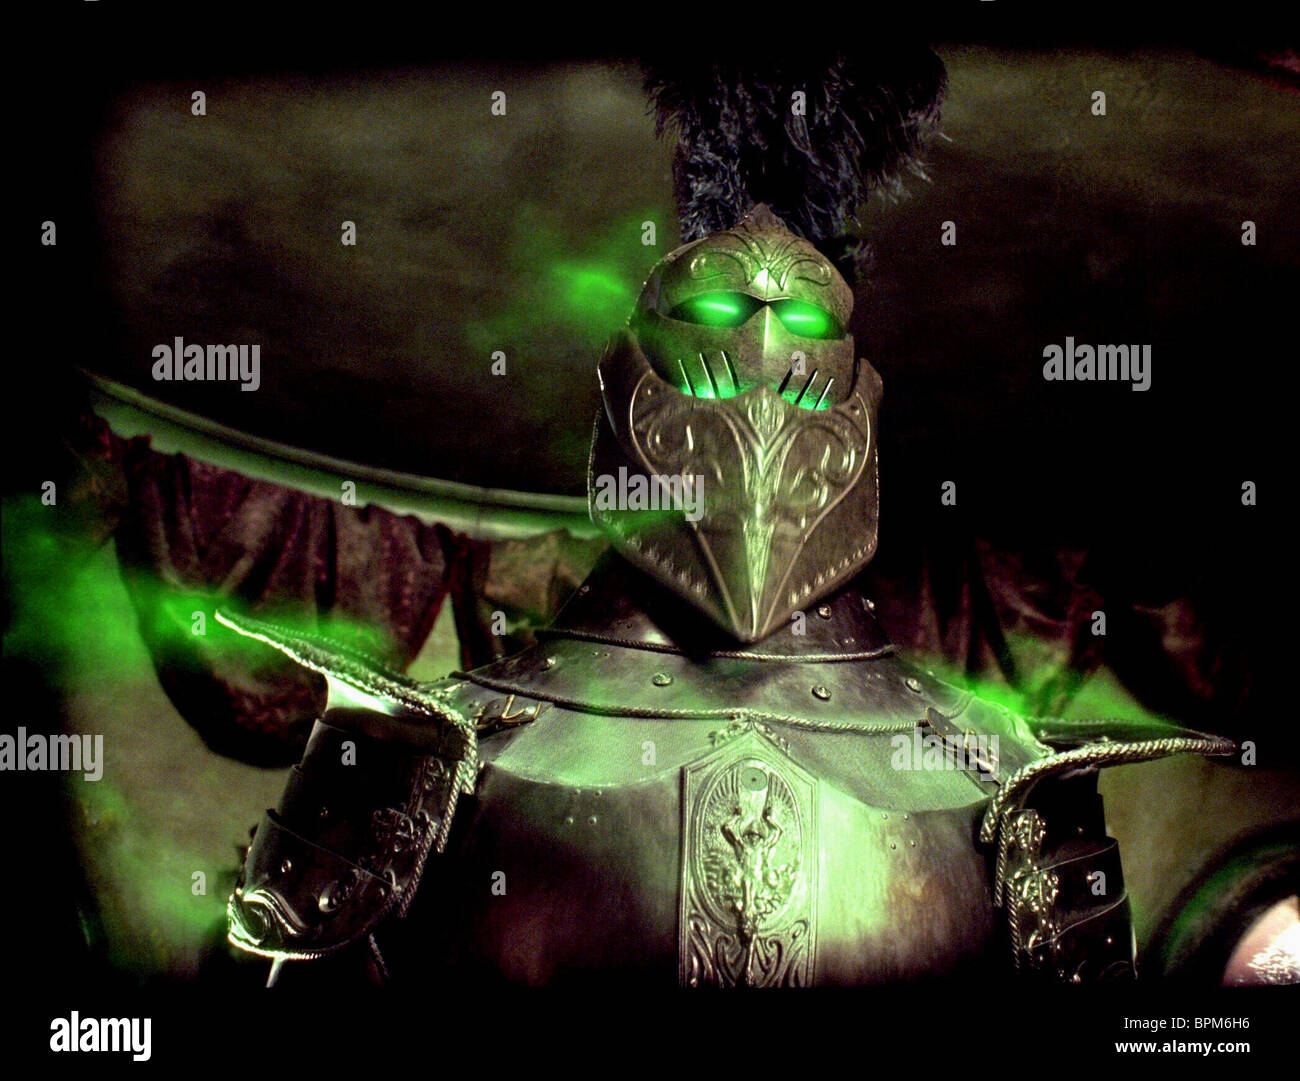 The Black Knight Ghost Scooby Doo 2 Monsters Unleashed 2004 Stock Photo Alamy